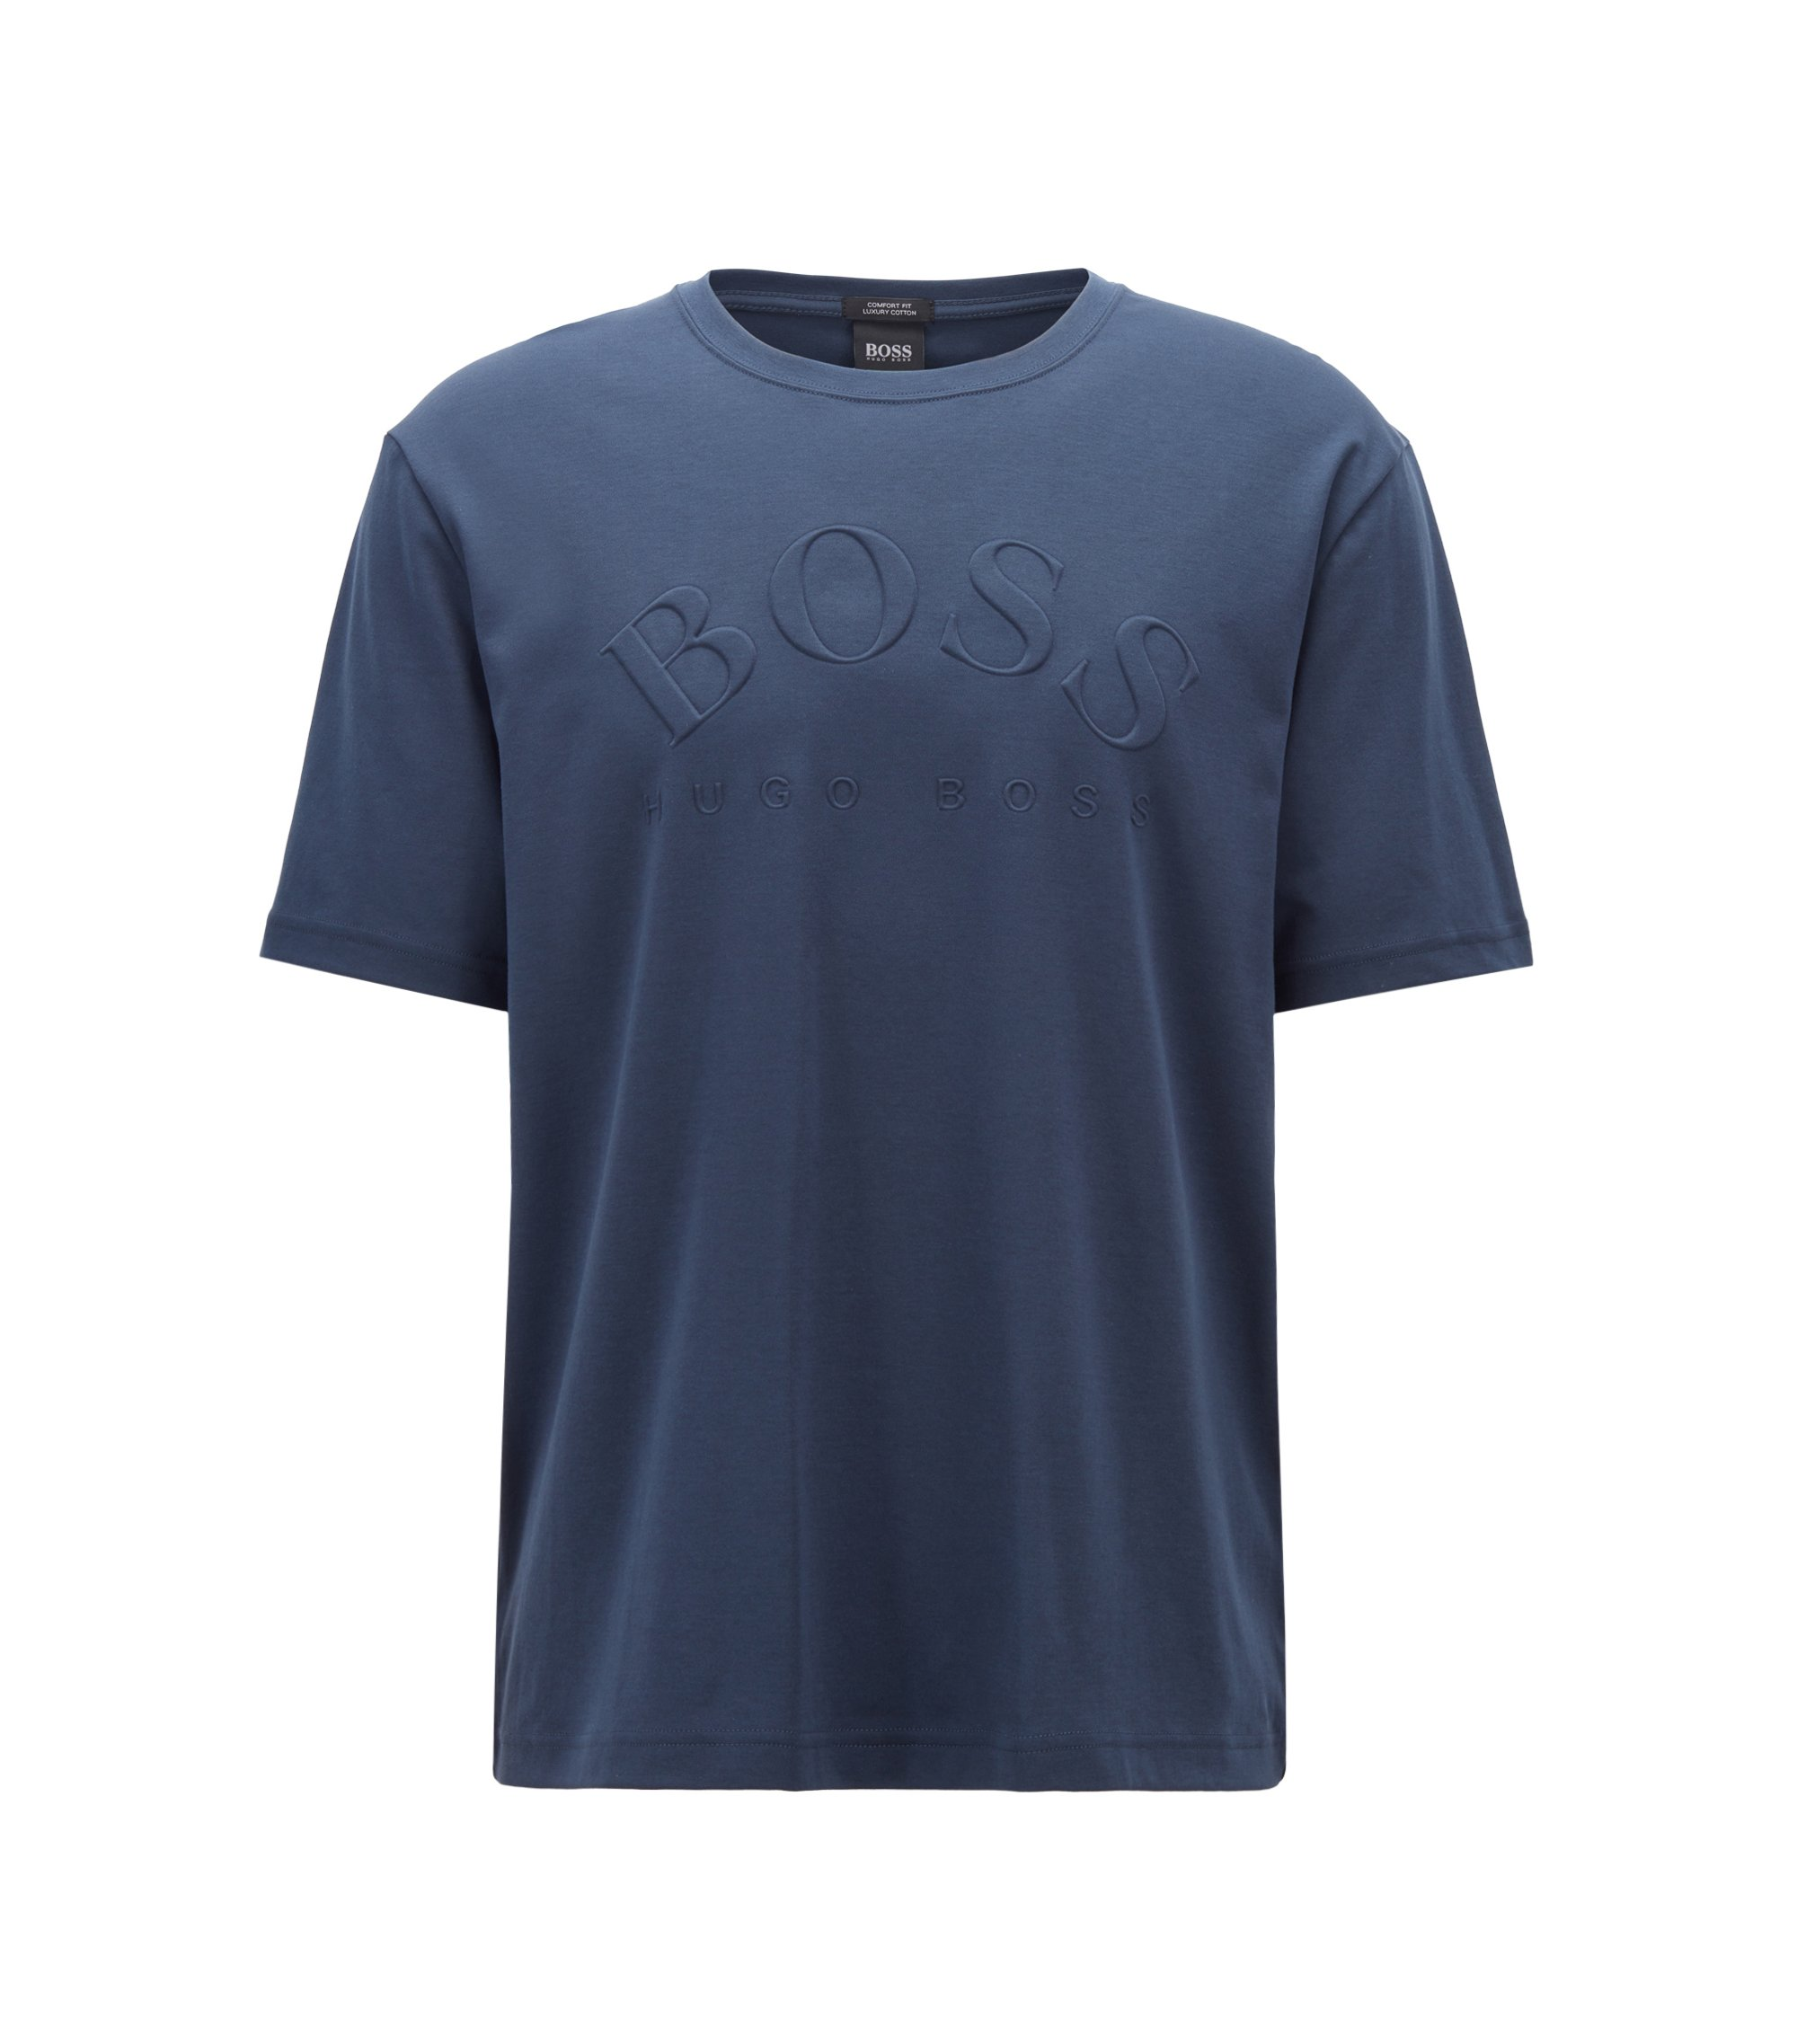 Cotton T-shirt with heritage-inspired logo, Dark Blue